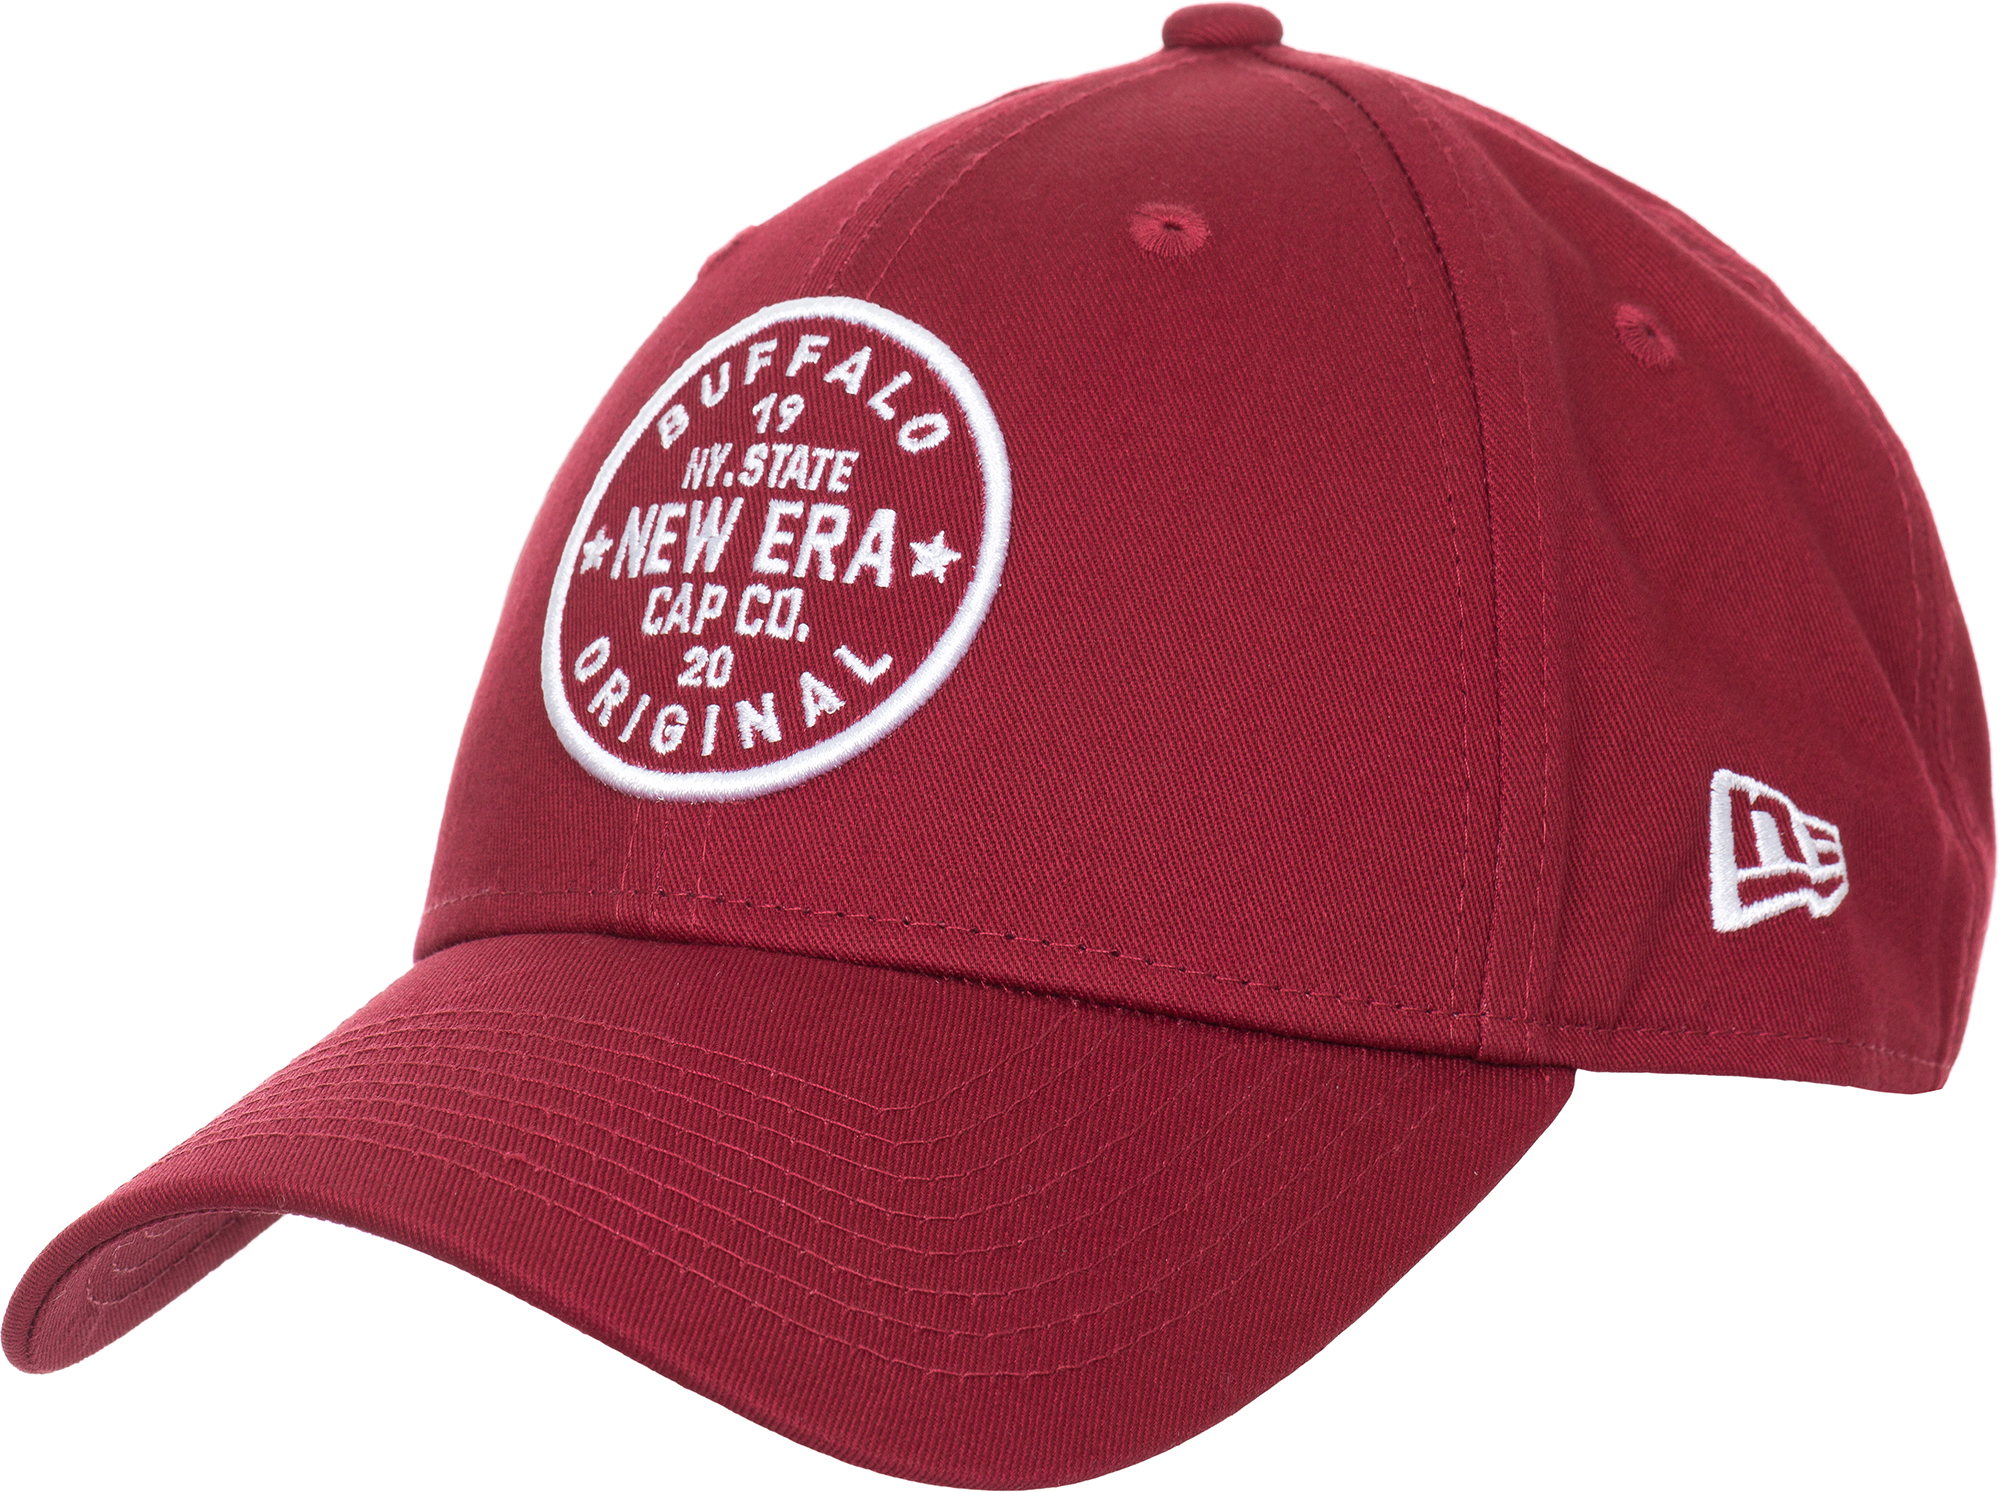 цена на New Era Бейсболка New Era Lic 232 9Forty NE Patch